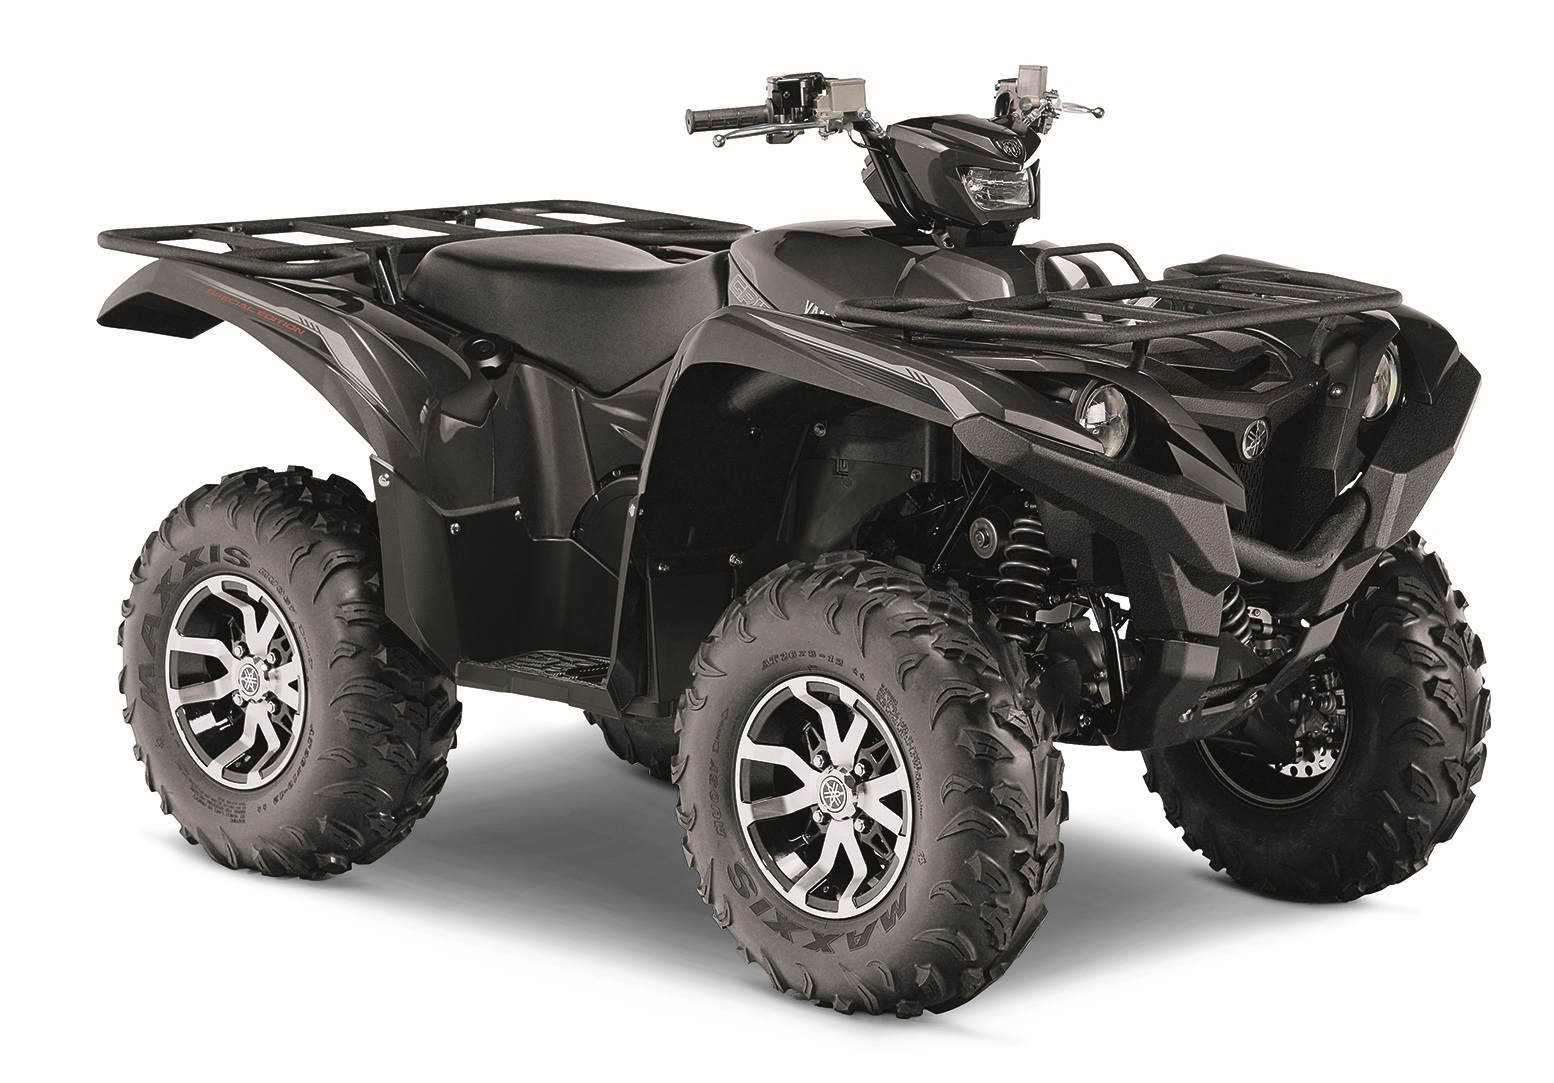 2016 grizzly and kodiak 700 in production at yamaha s u s factory atv illustrated. Black Bedroom Furniture Sets. Home Design Ideas